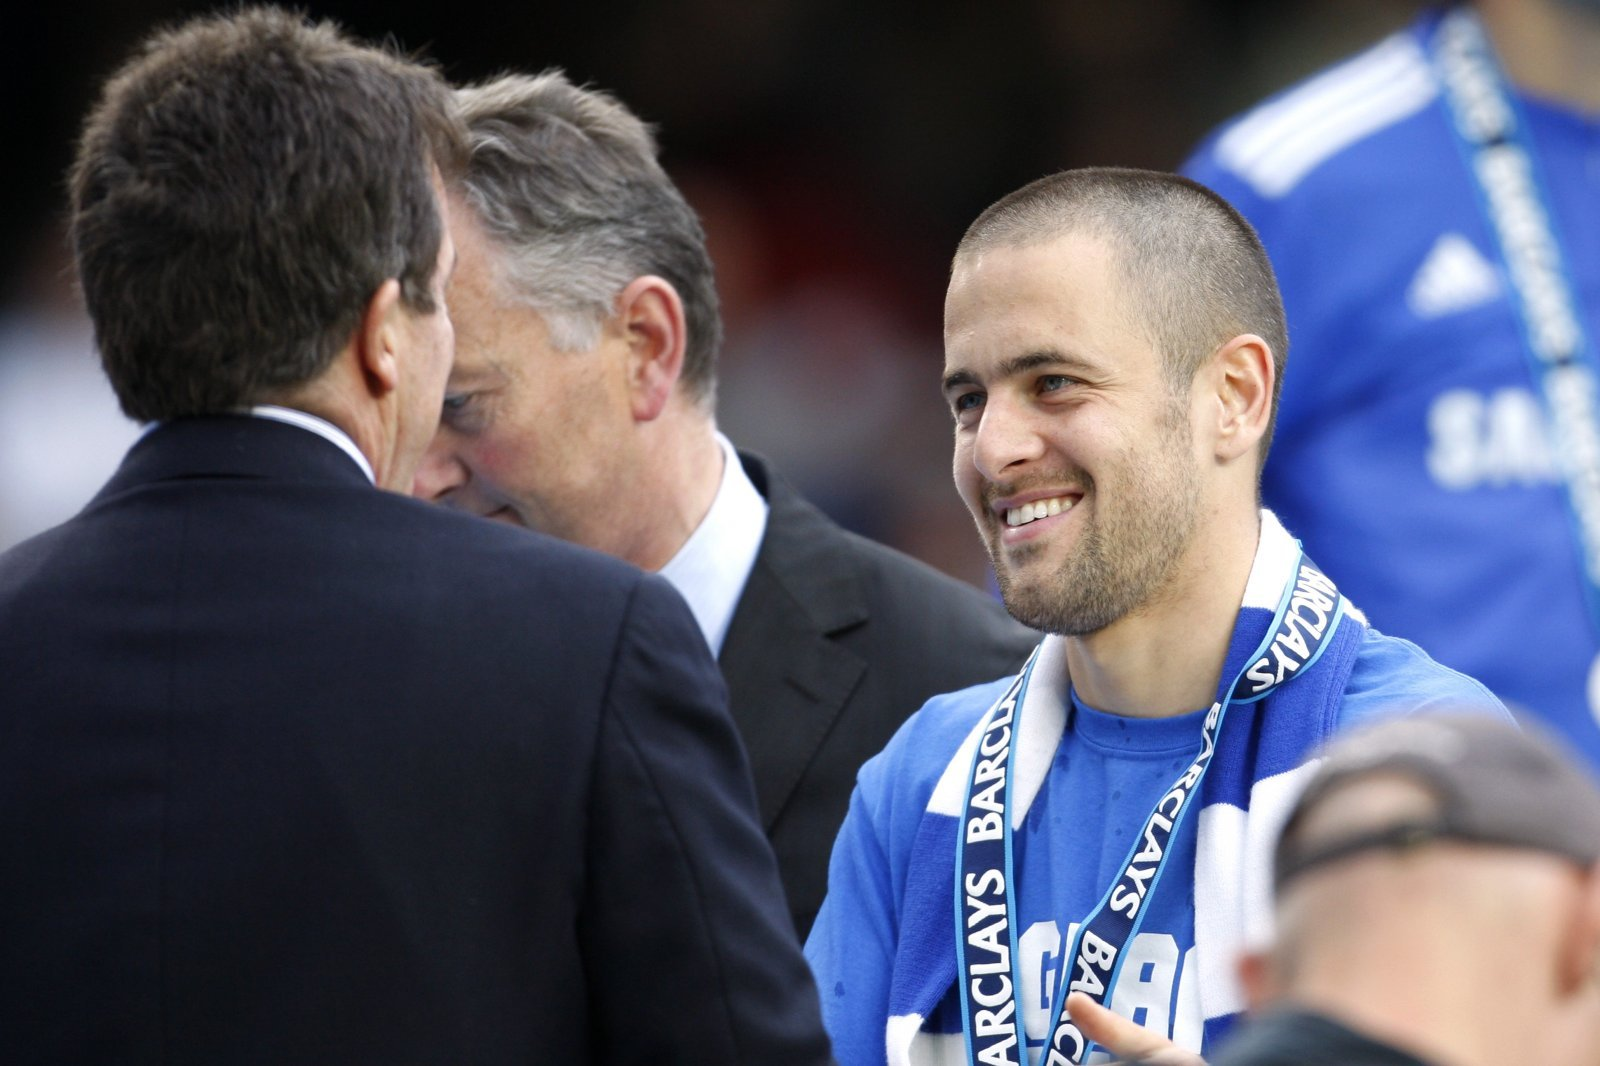 Joe Cole retires at the age of 37